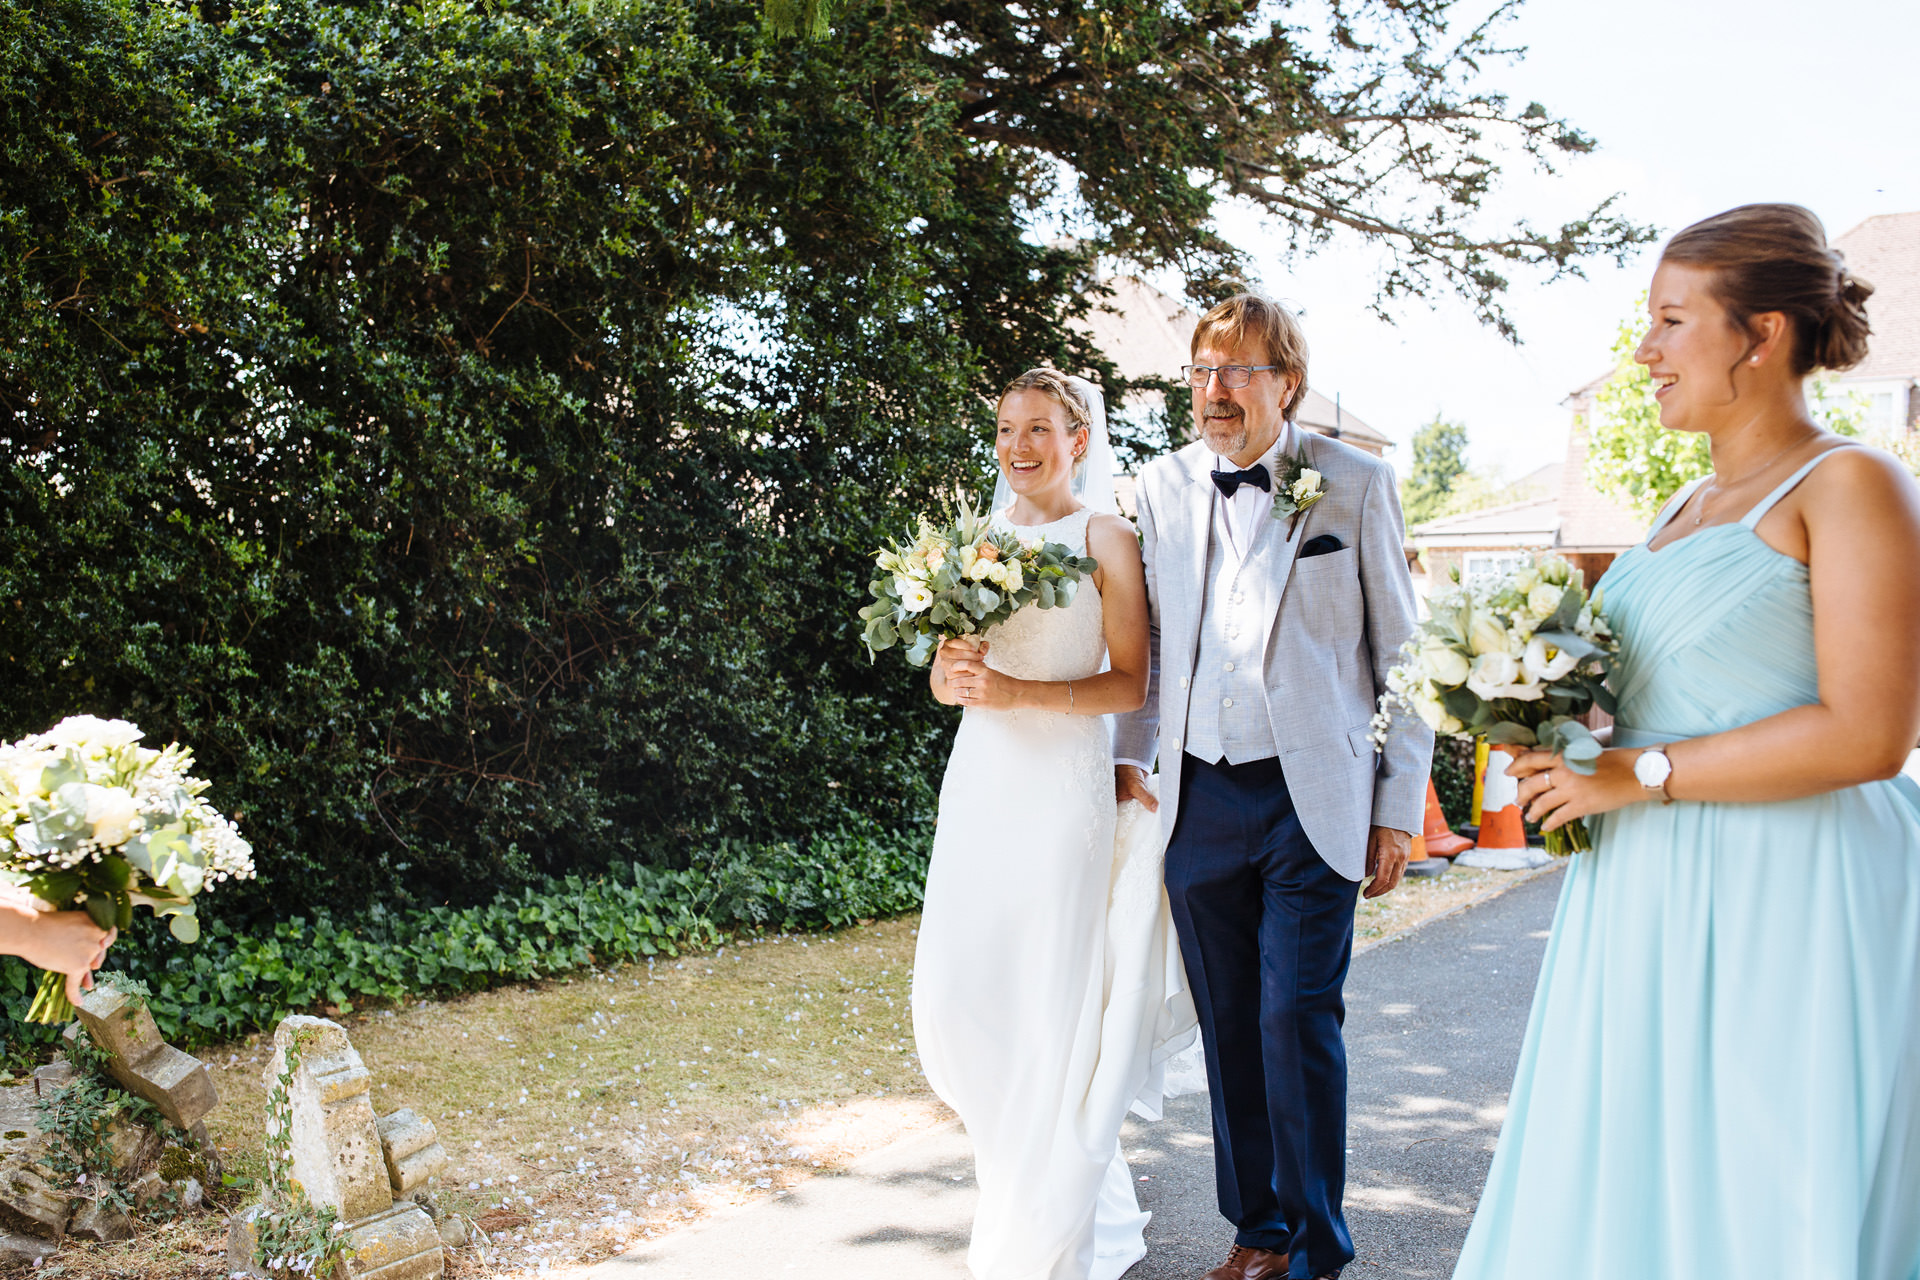 bride in elegant dress arriving with her dad in suit and bow tie